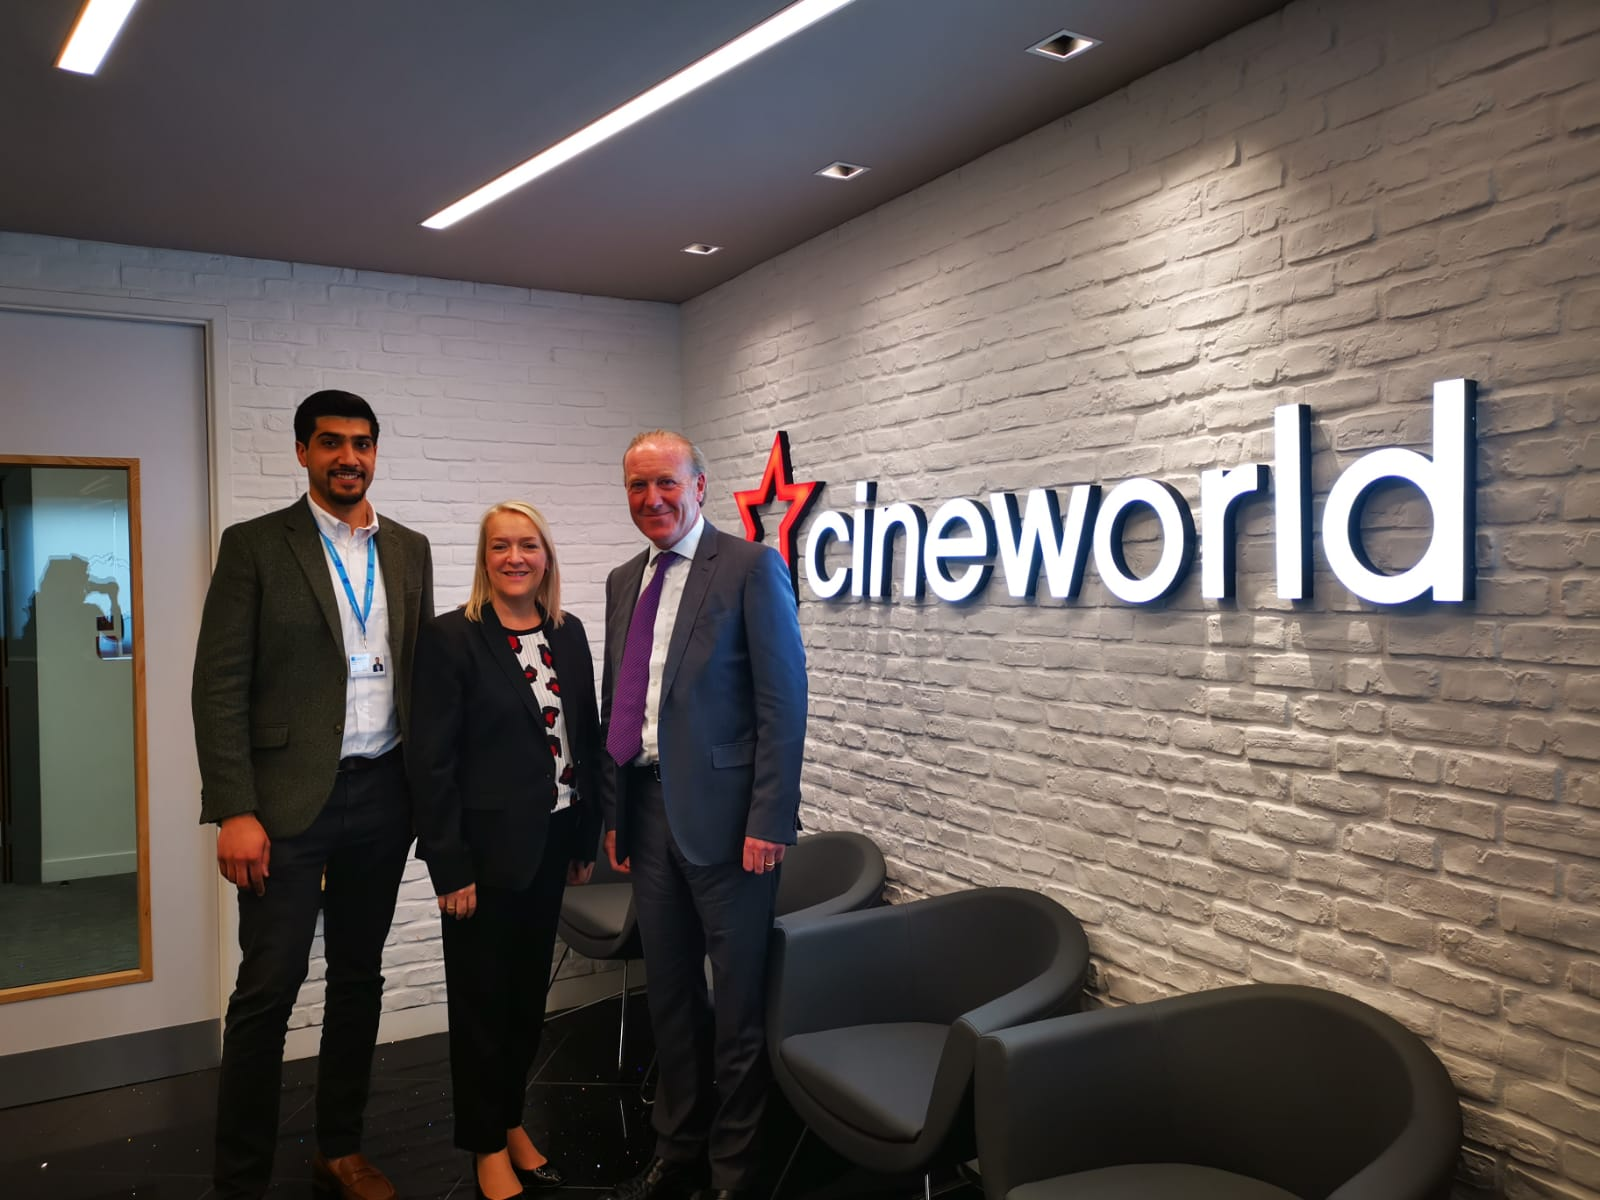 CINEWORLD AWARDS LODGE SECURITY NEW GUARDING CONTRACT